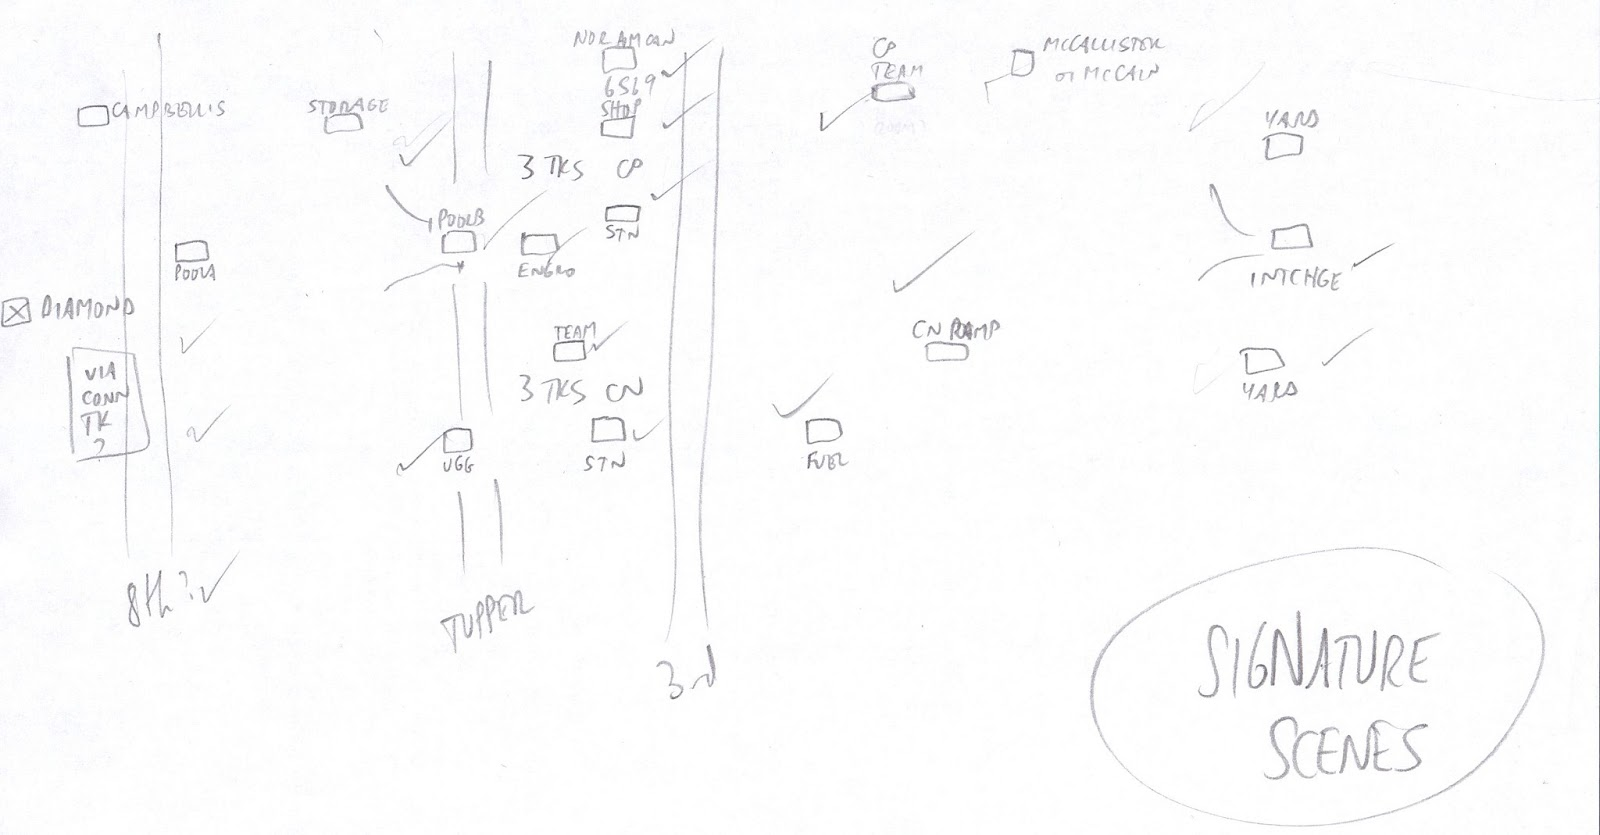 Trackside Treasure Portage La Prairie Layout Trackplans